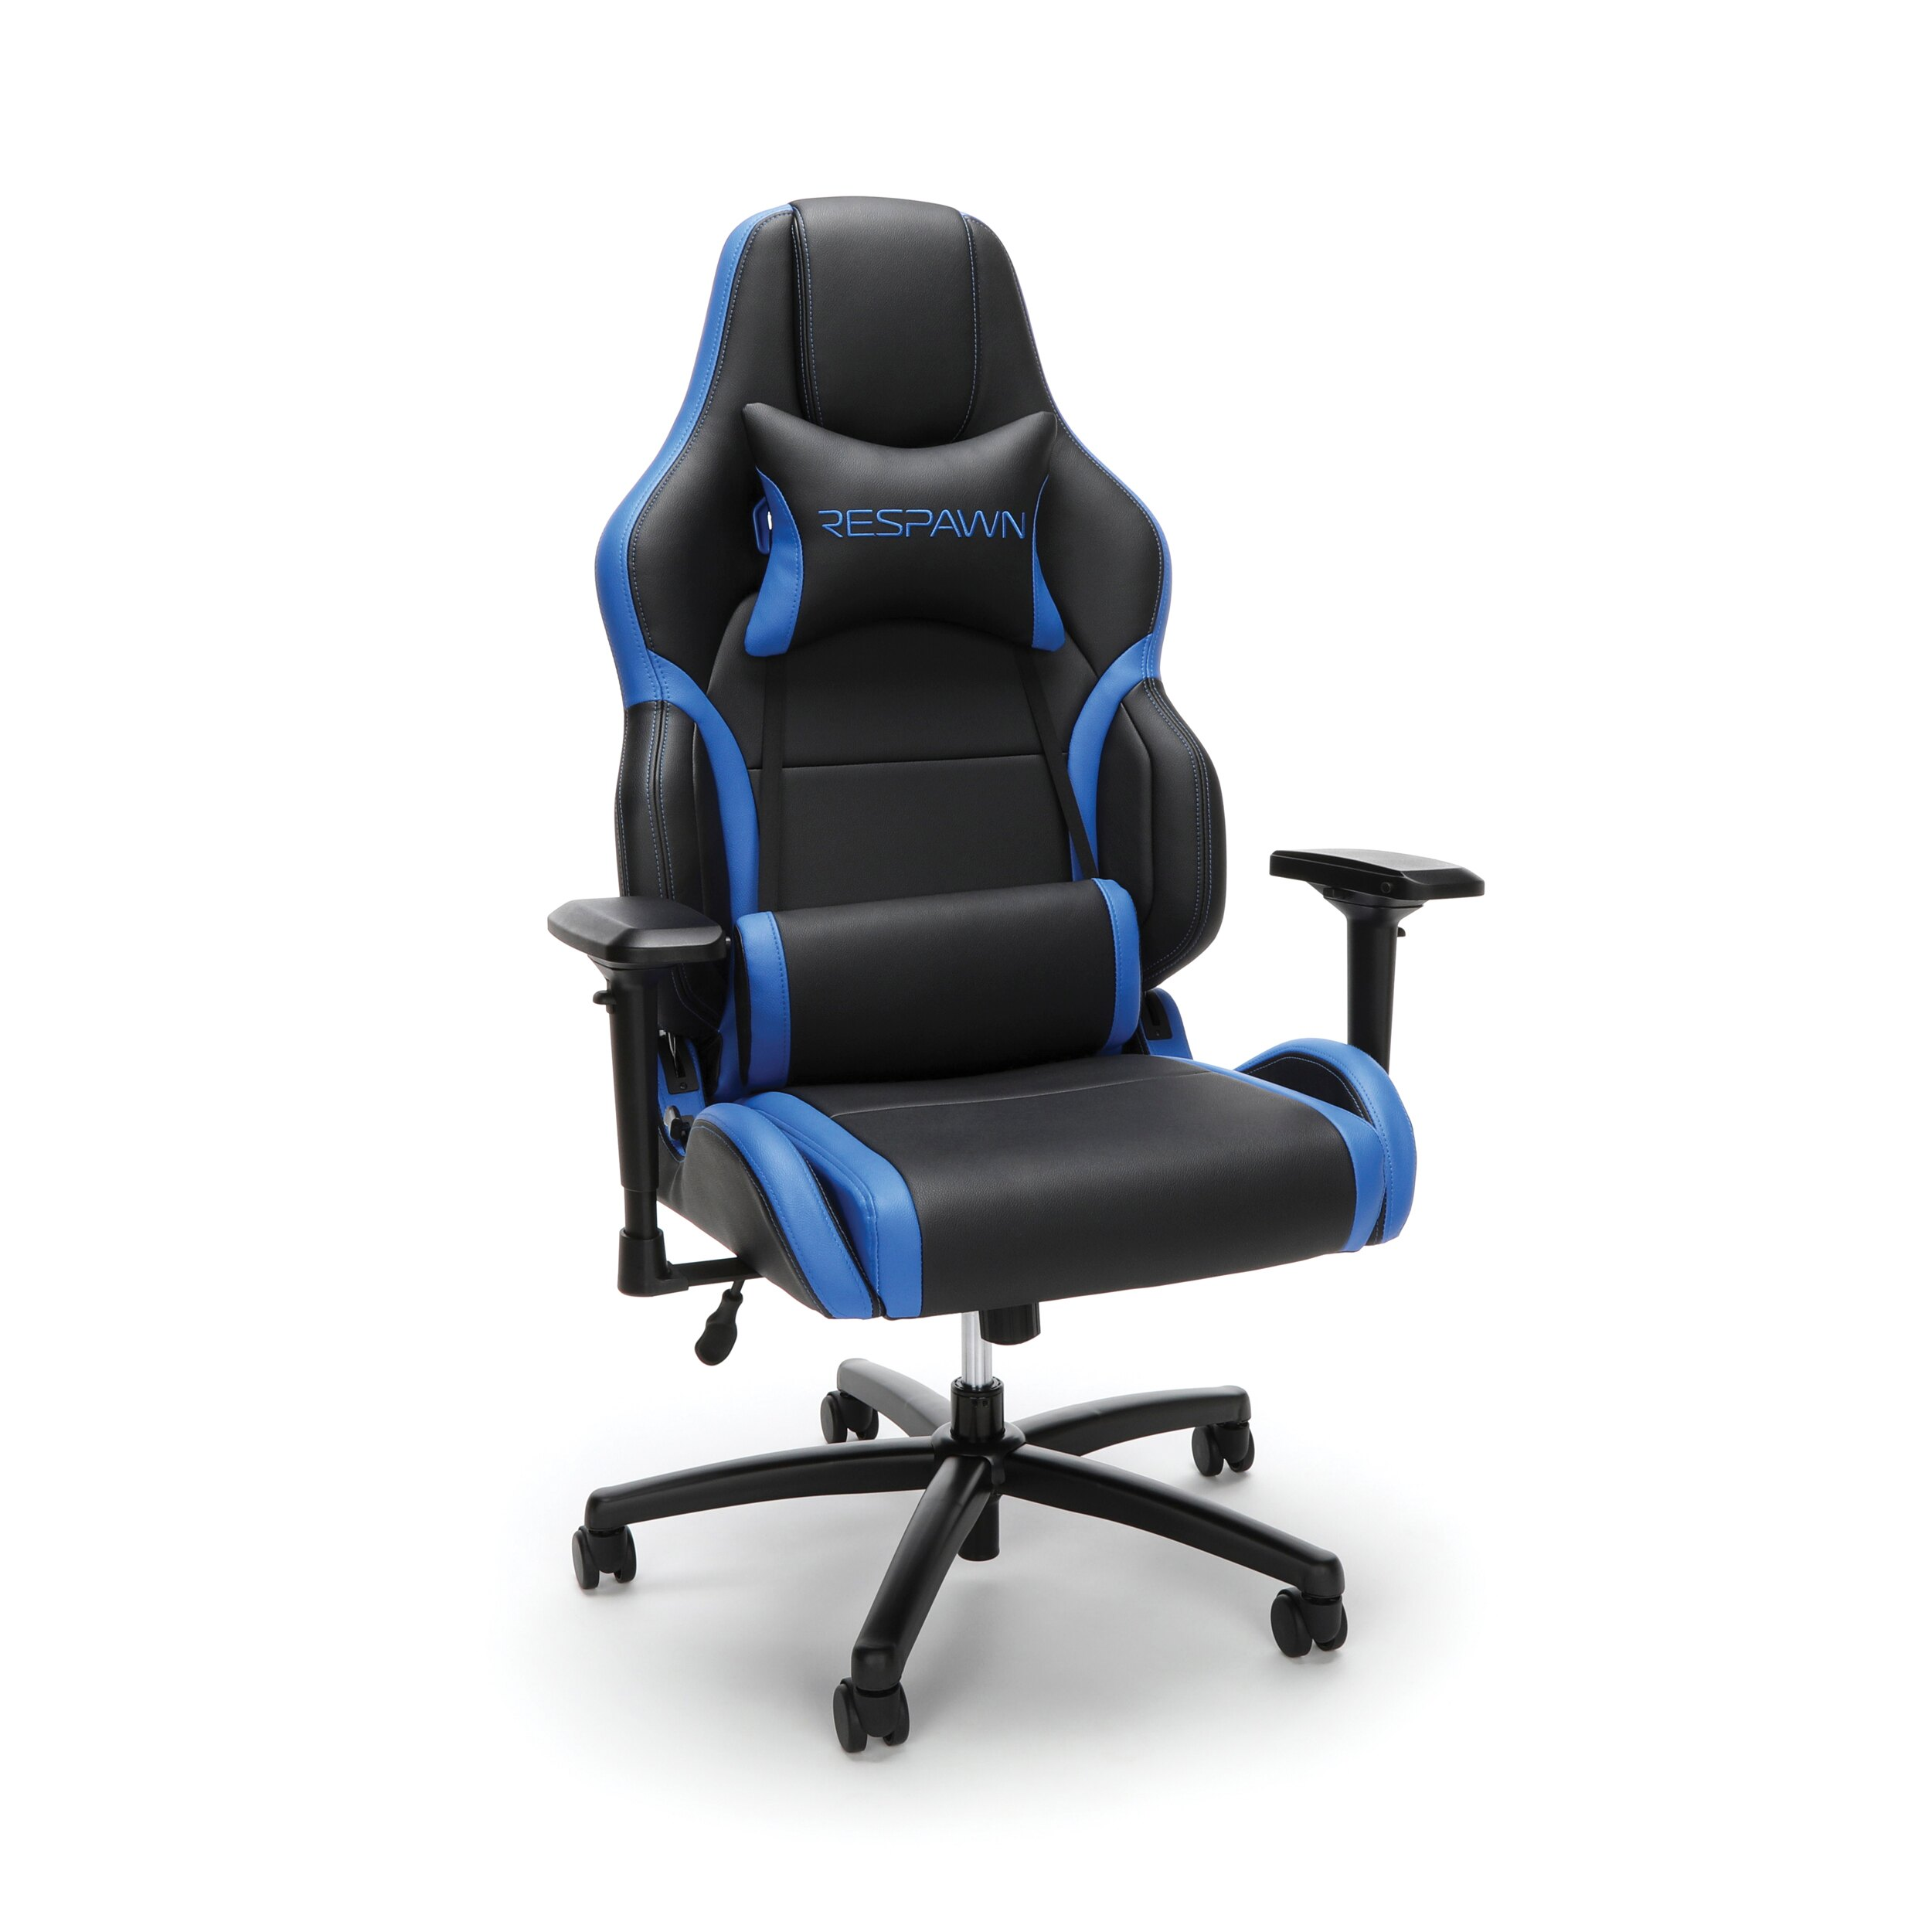 RESPAWN-400 Racing Style Gaming Chair - Big and Tall Leather Chair, Office or Gaming Chair (RSP-400) 0